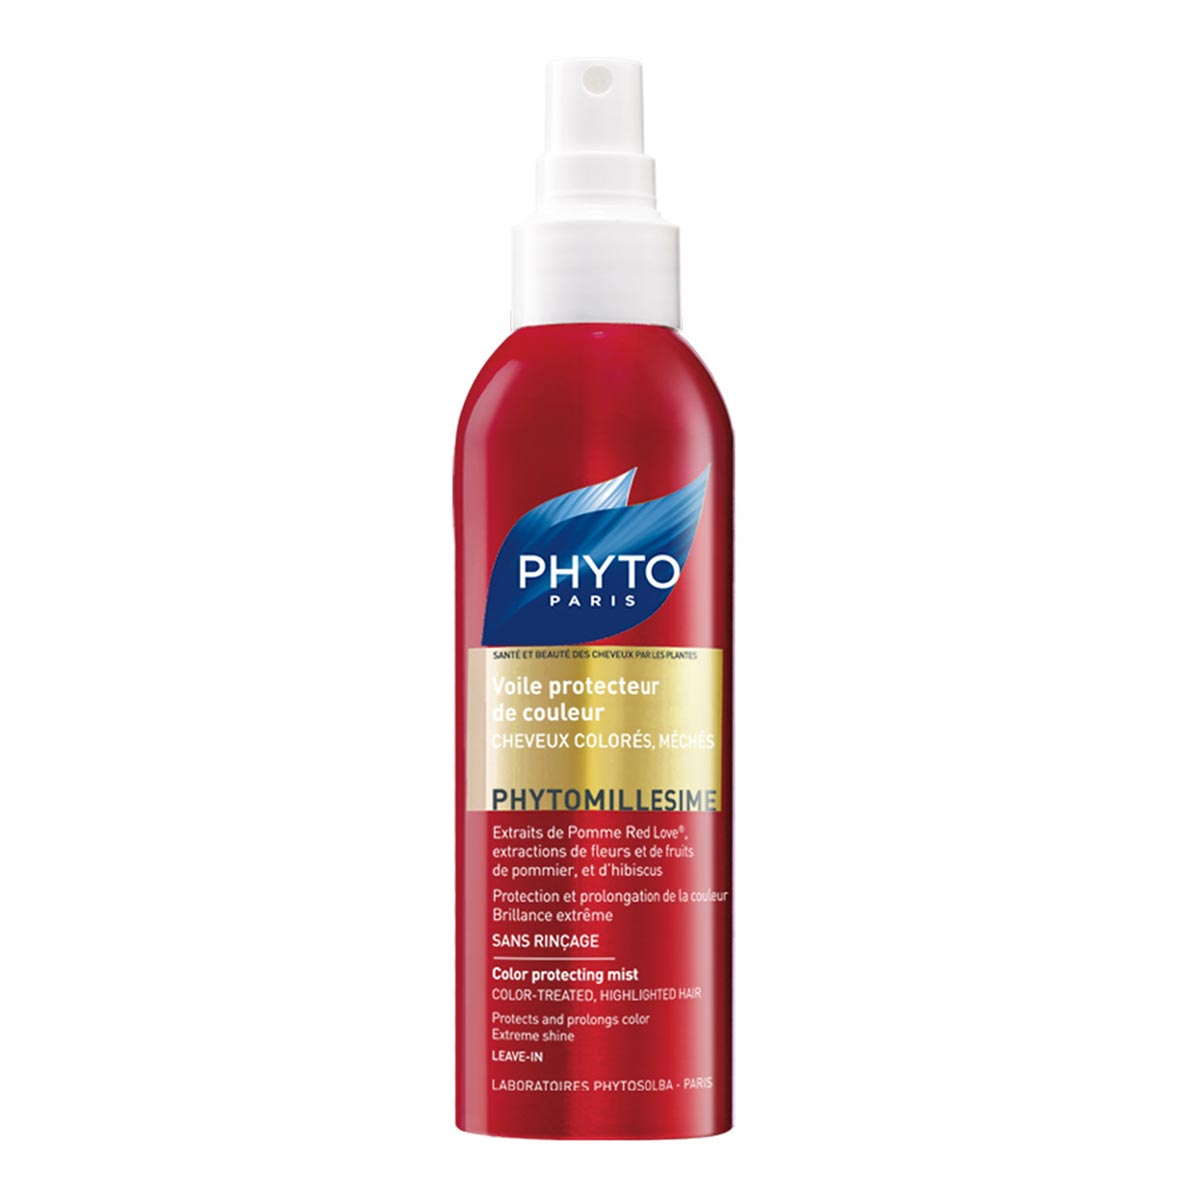 Phytomillesime - Voile Protecteur Couleur - Phyto 150ml